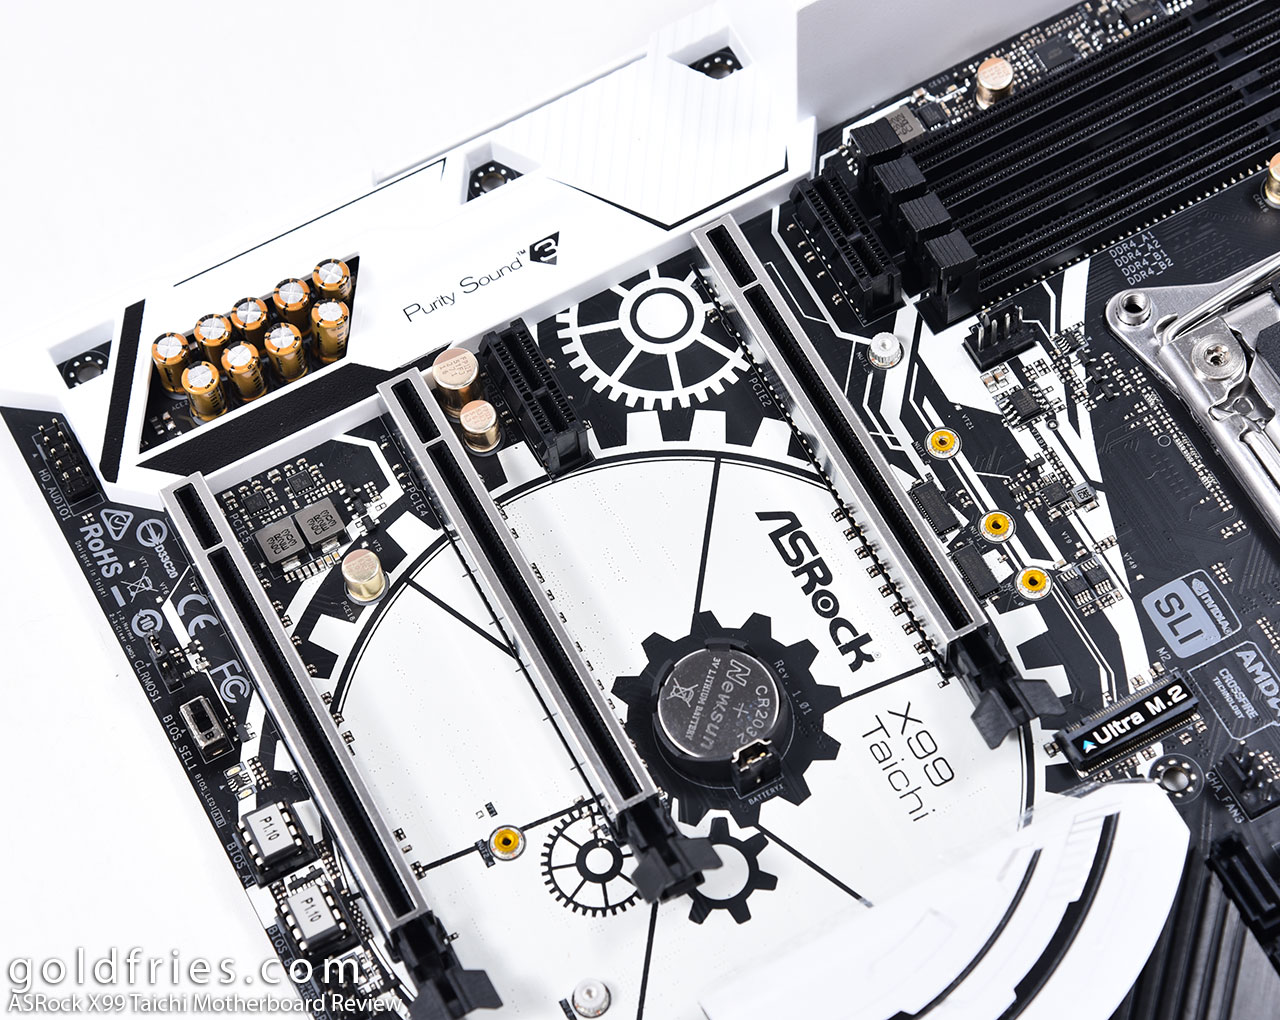 ASRock X99 Taichi Motherboard Review